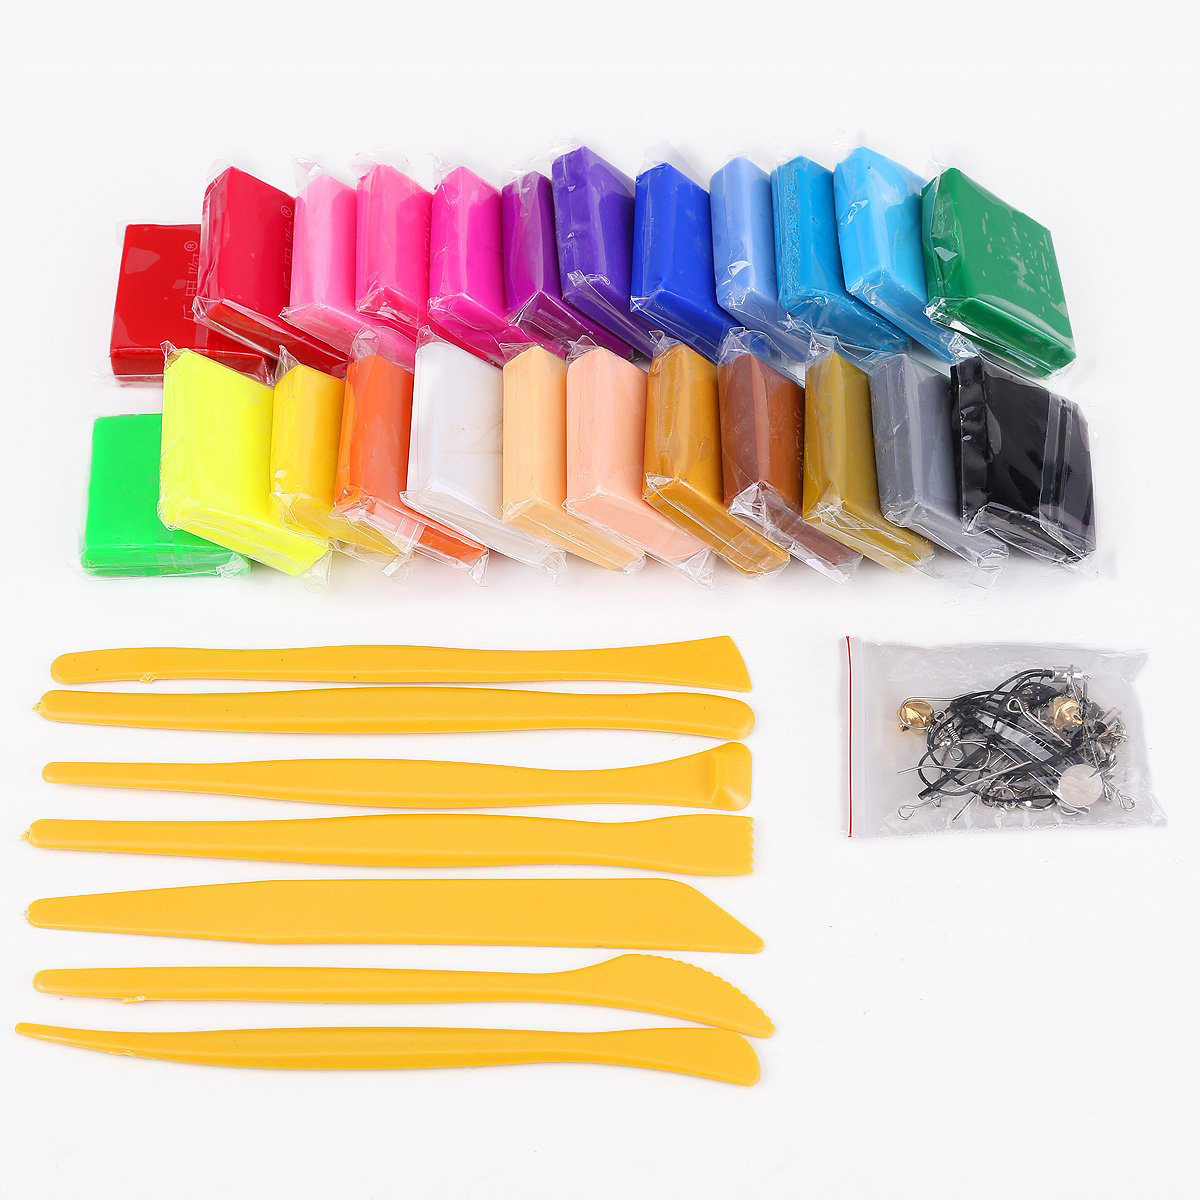 24 colors + Pate polymer modeling tools + accessories